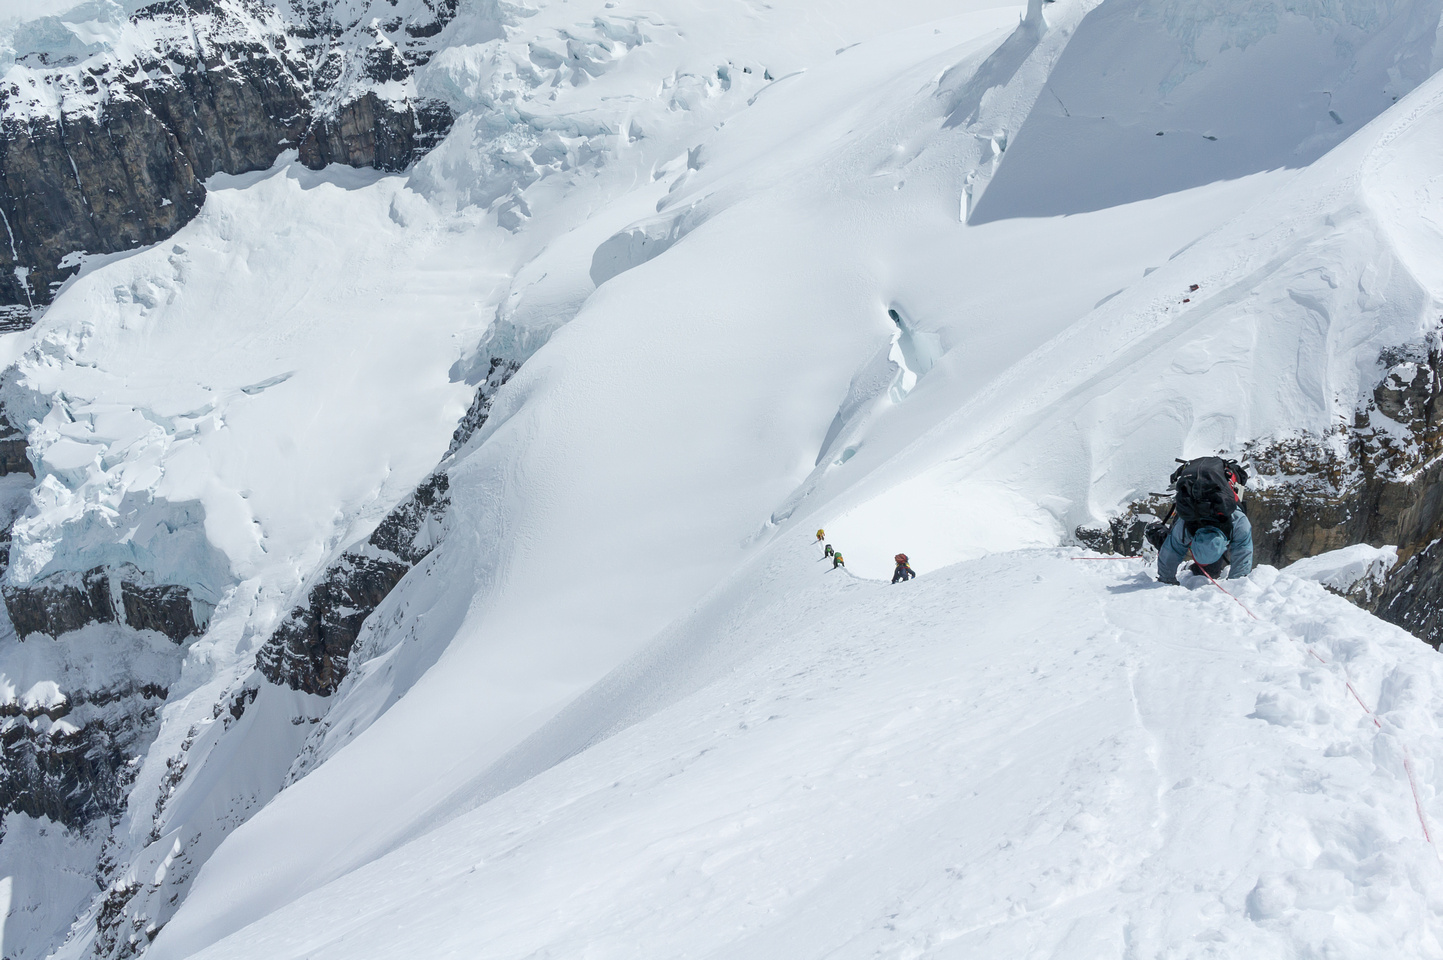 Raf's view of the two teams carefully down climbing the snow arete from the summit of Twins Tower.